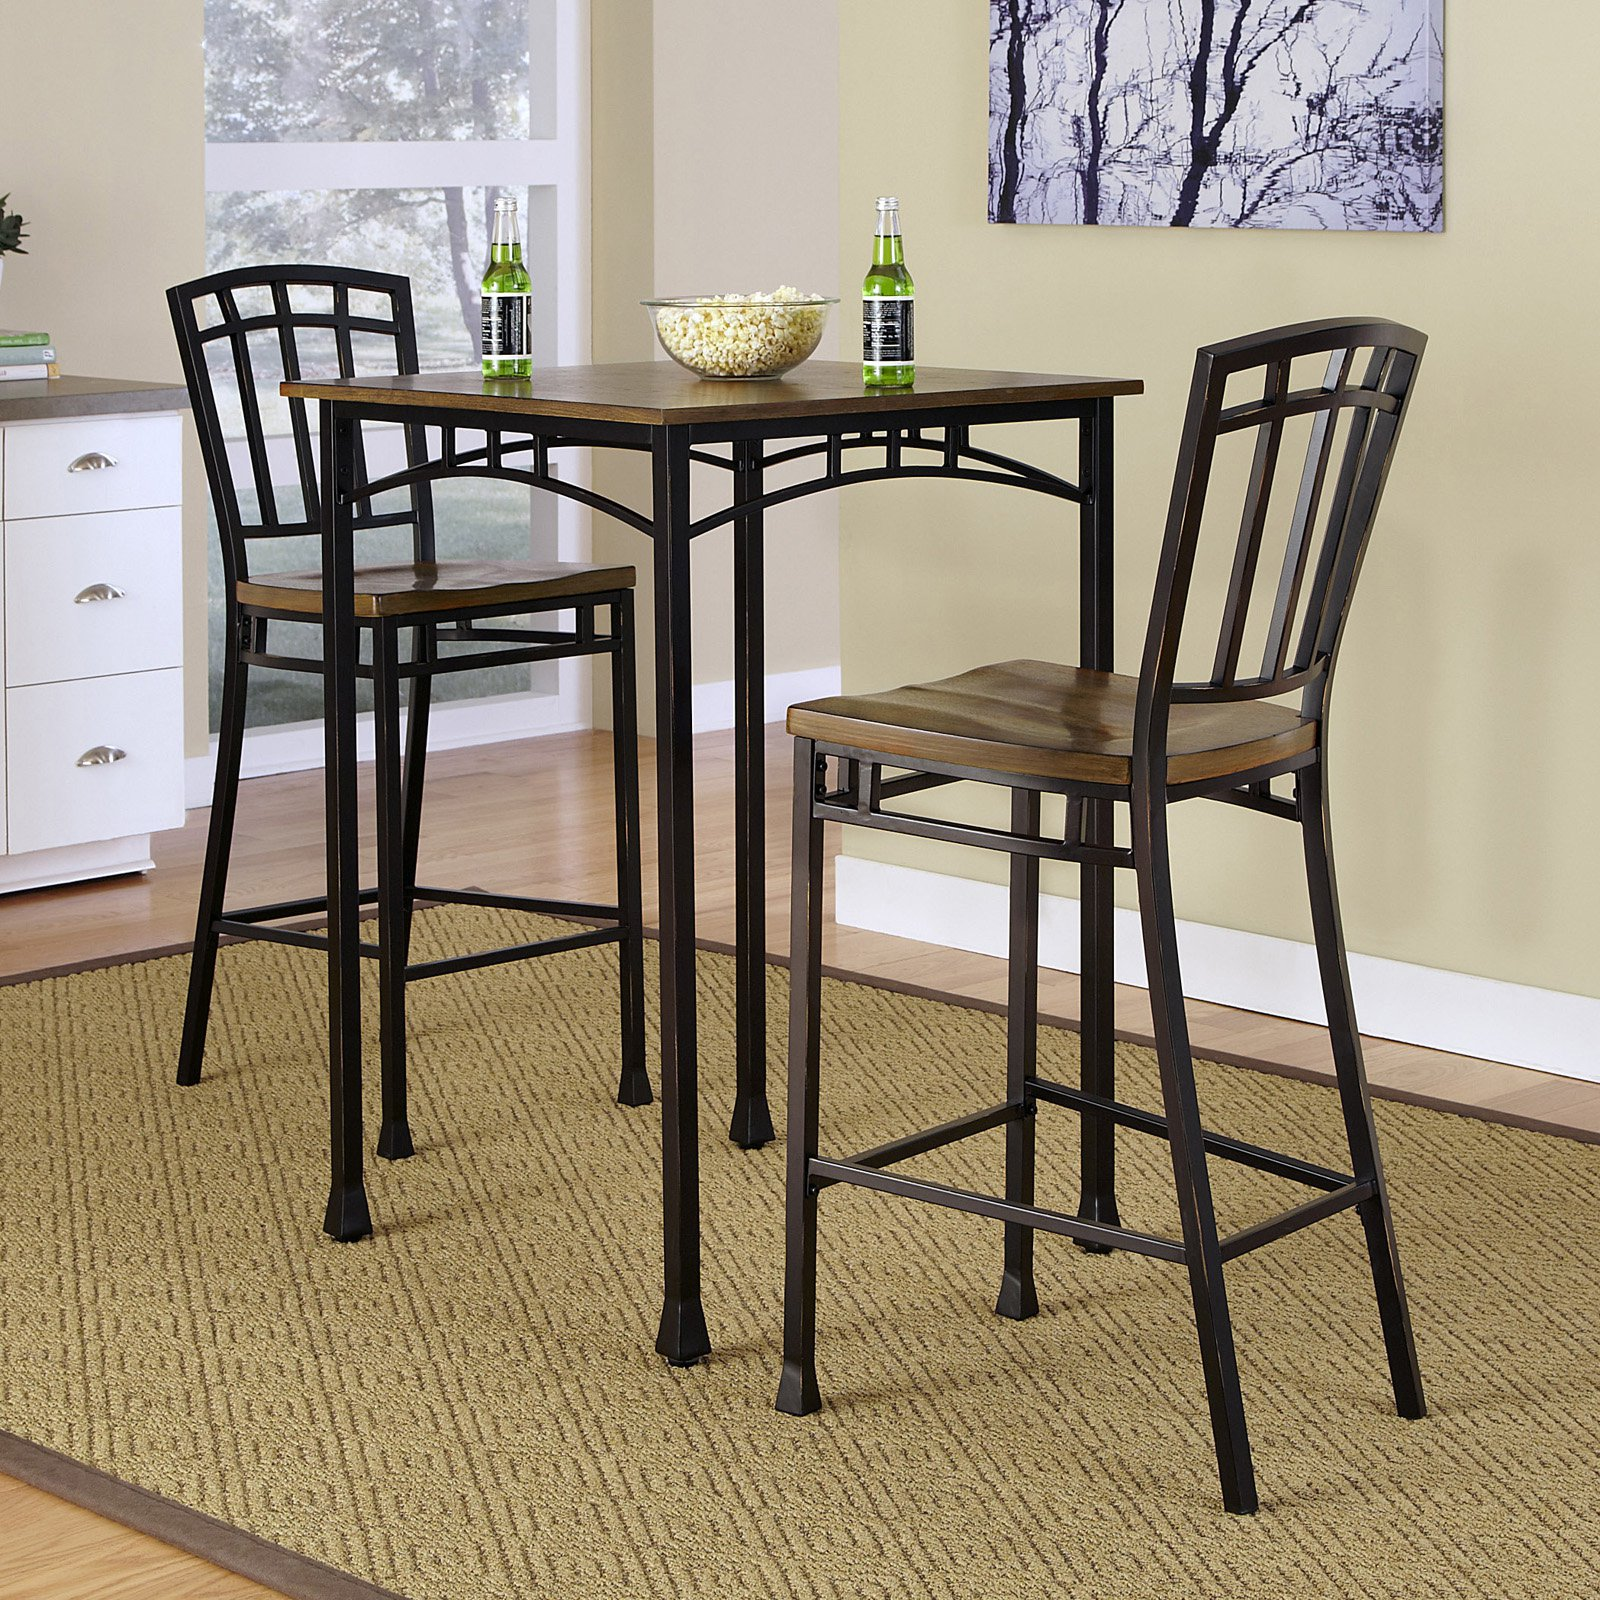 Modern Furniture Wichita Ks Modern Craftsman 3pc Bistro Set